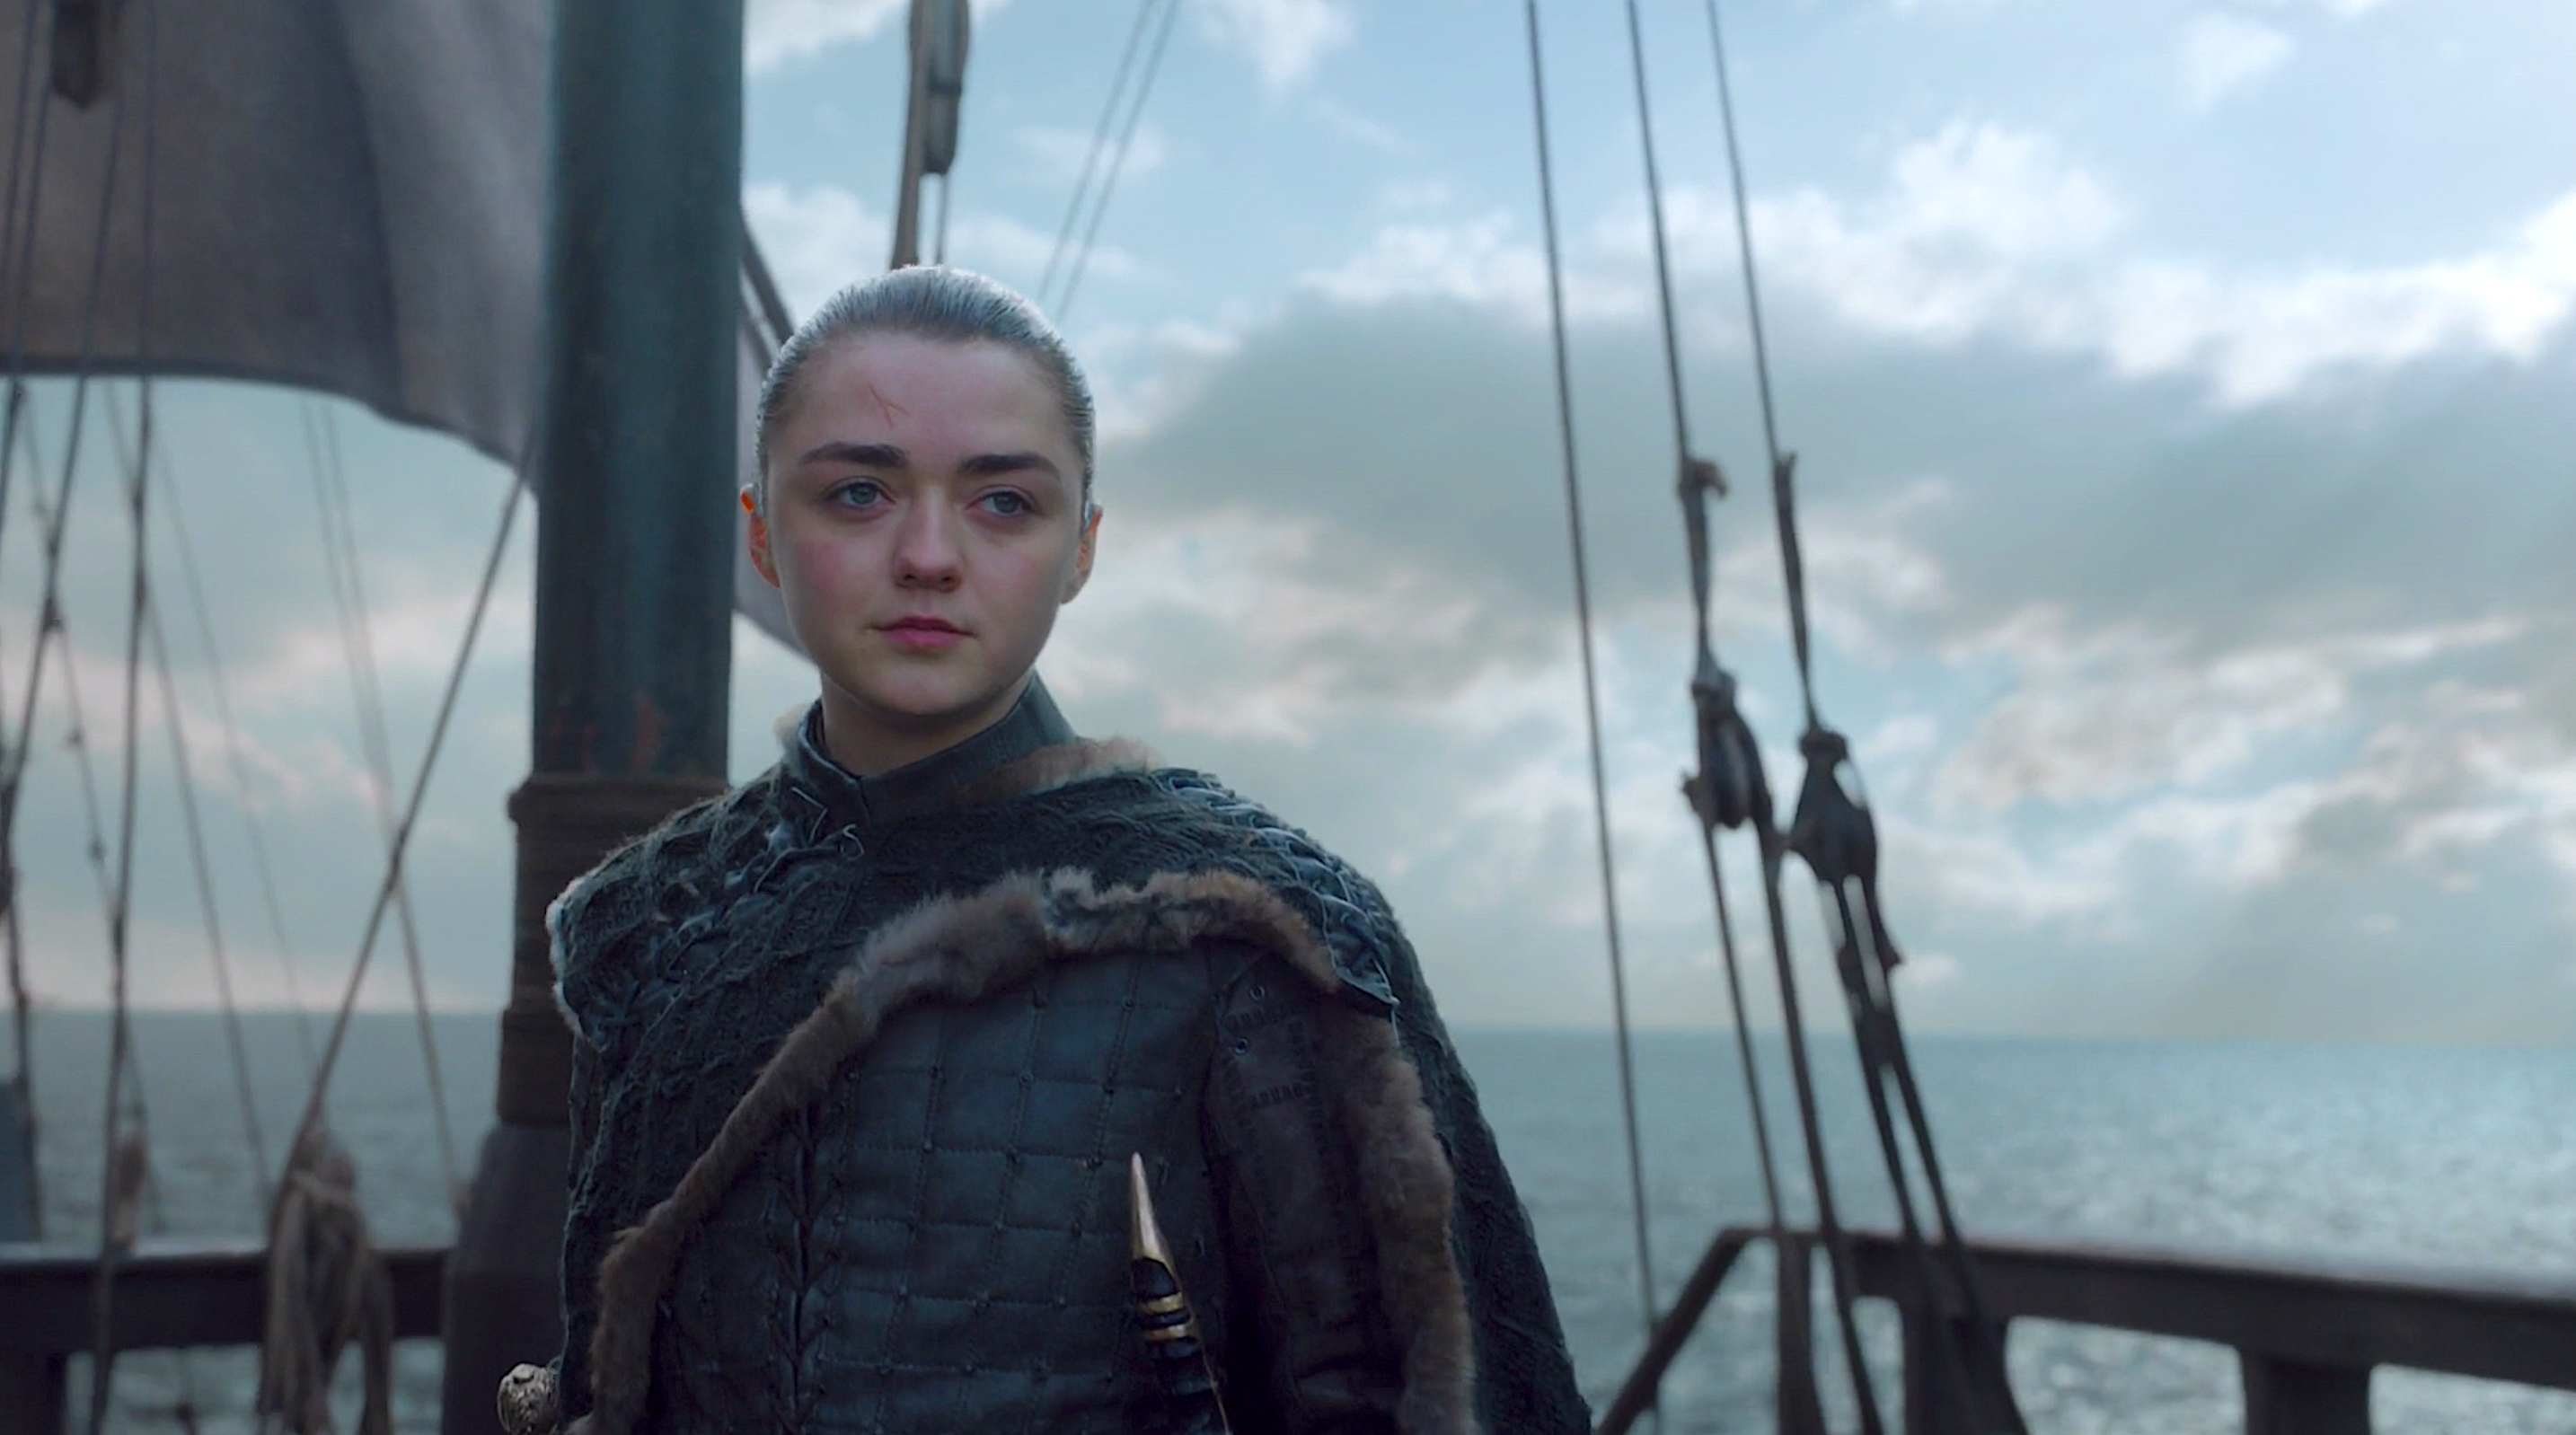 Arya Stark sails West of Westeros at the end of Game of Thrones season 8.